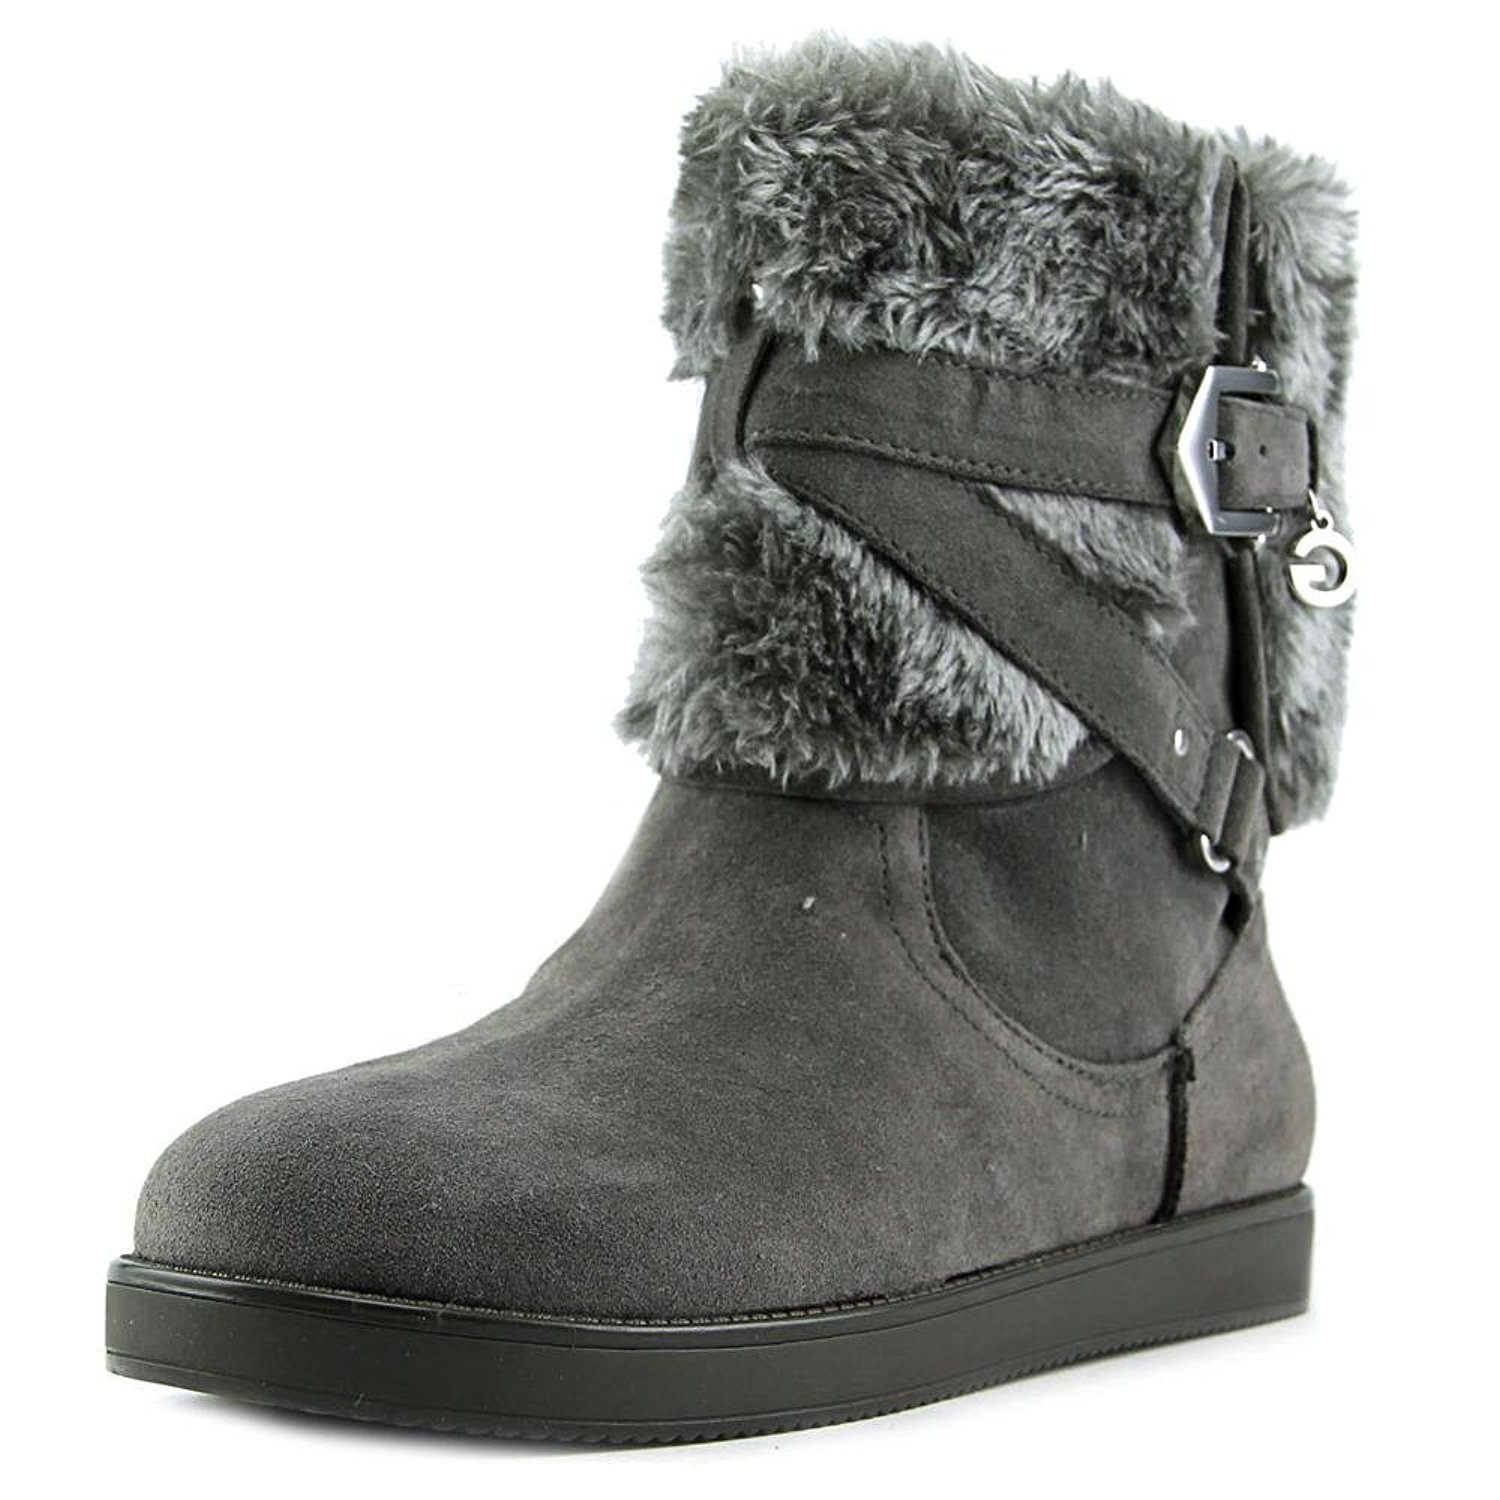 G by Guess Womens ALIXA Faux Fur Round Toe Ankle Cold Gray Multi Size 5.5